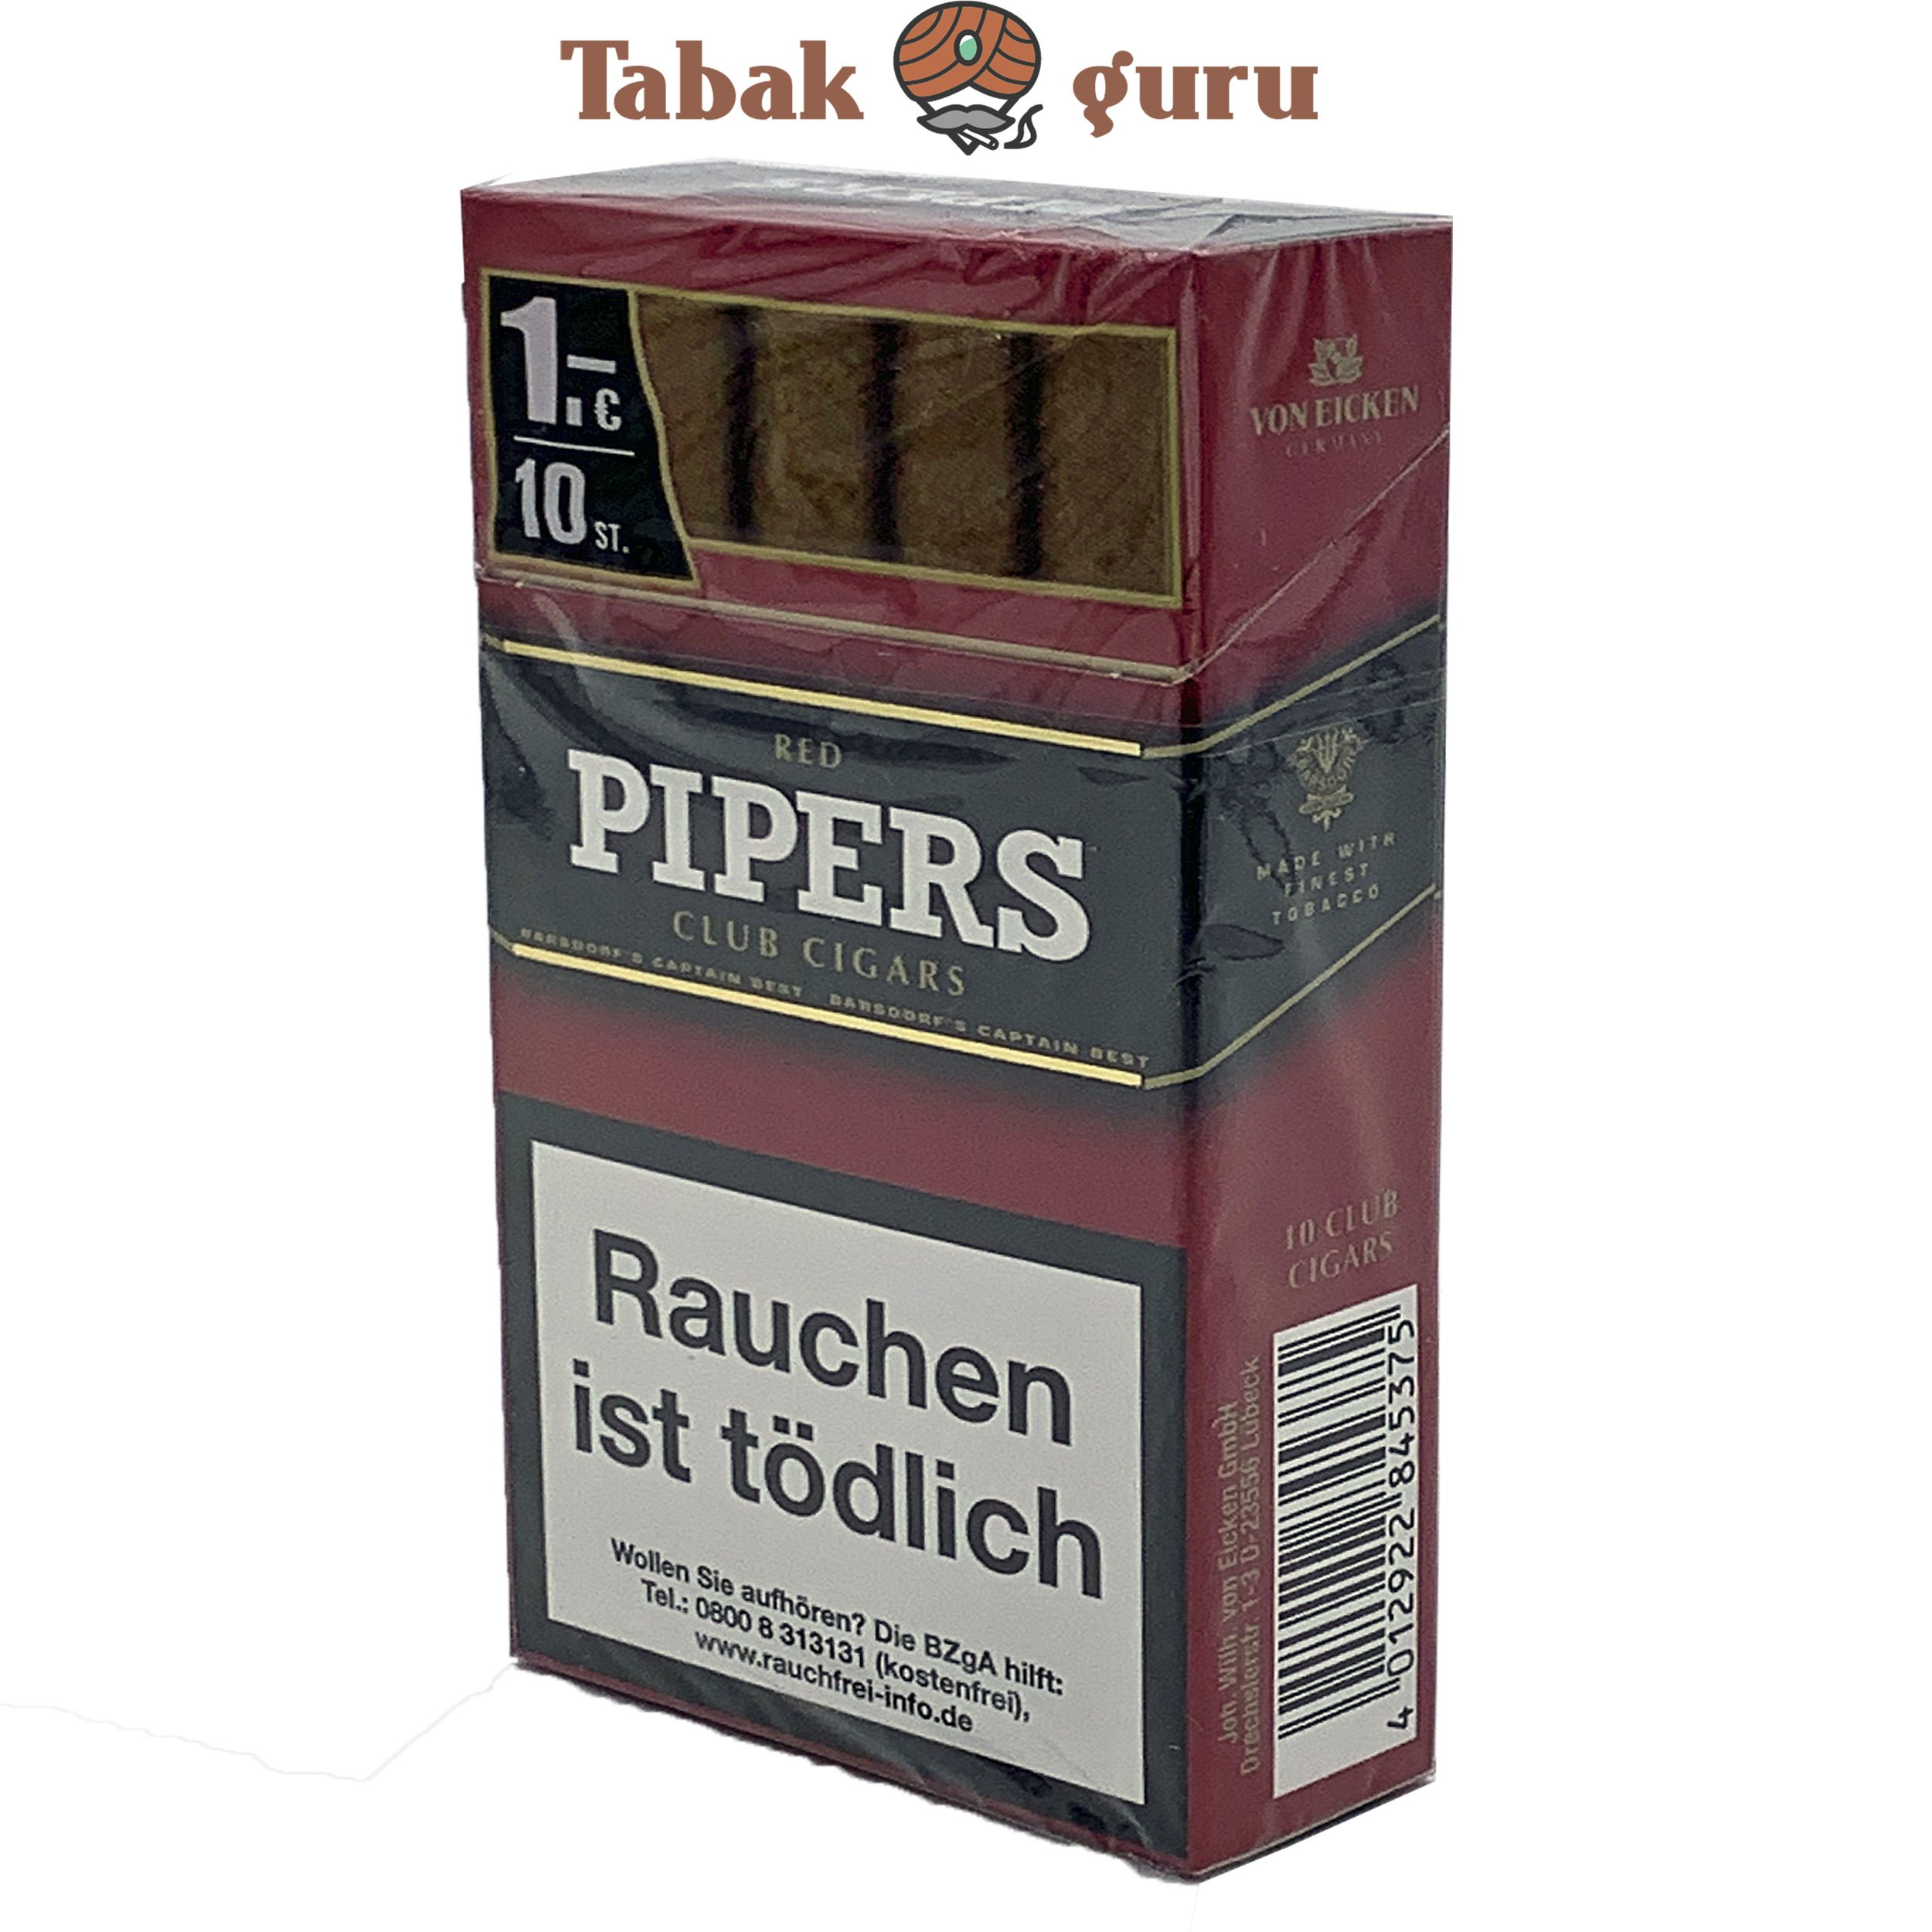 Pipers Club Cigars Red Cherry (10 Zigarren)